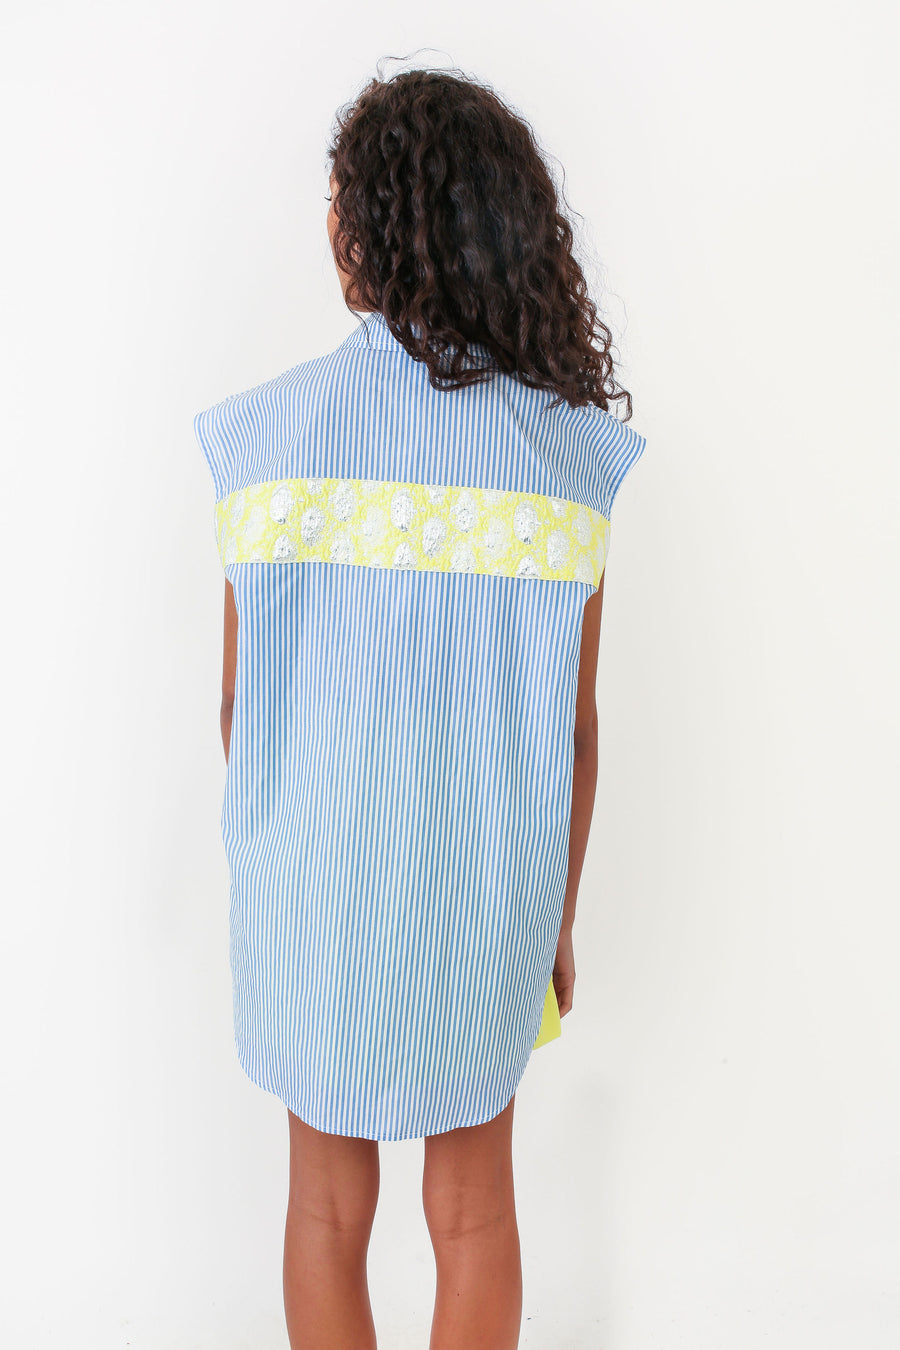 LEONA TOP OCEAN STRIPE *LIMITED*EDITION*